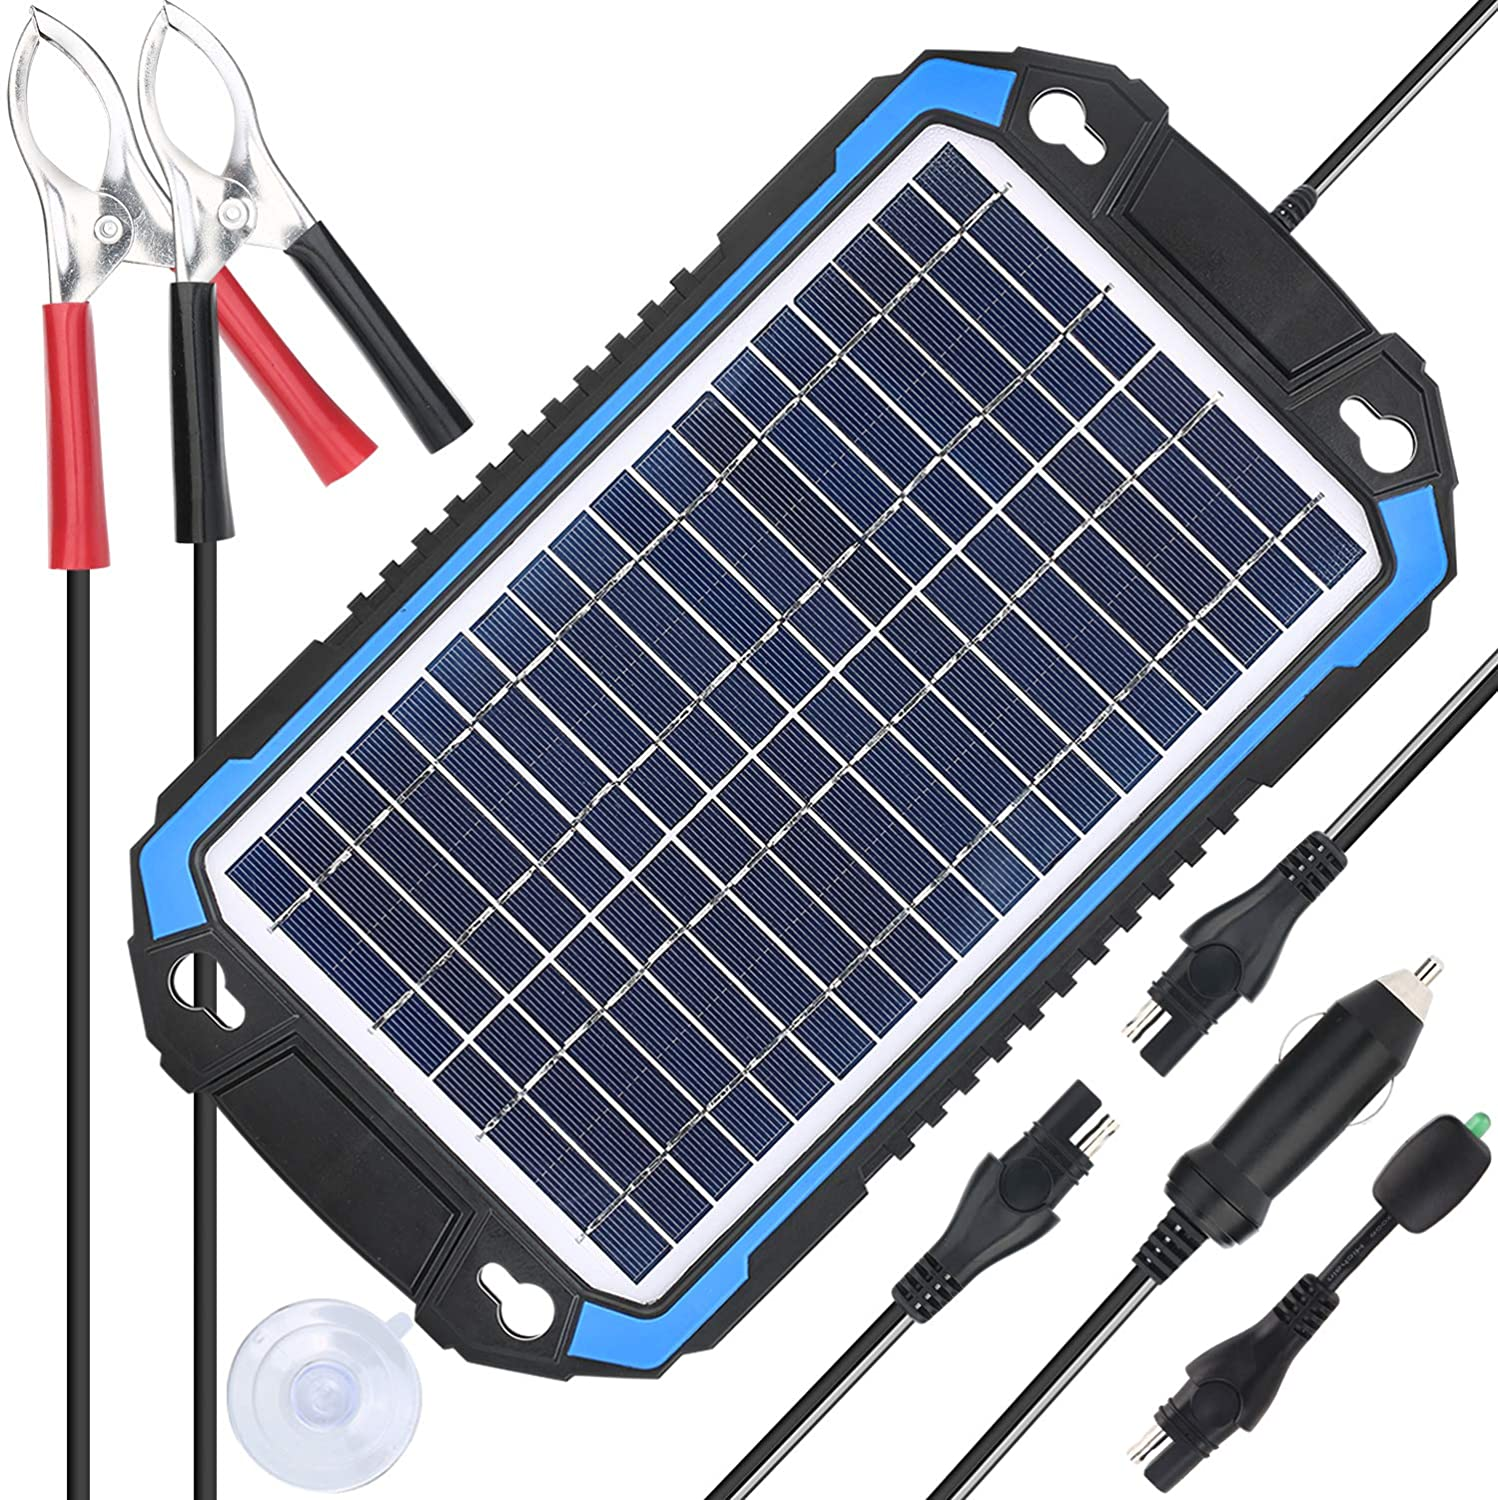 Best solar car battery charger